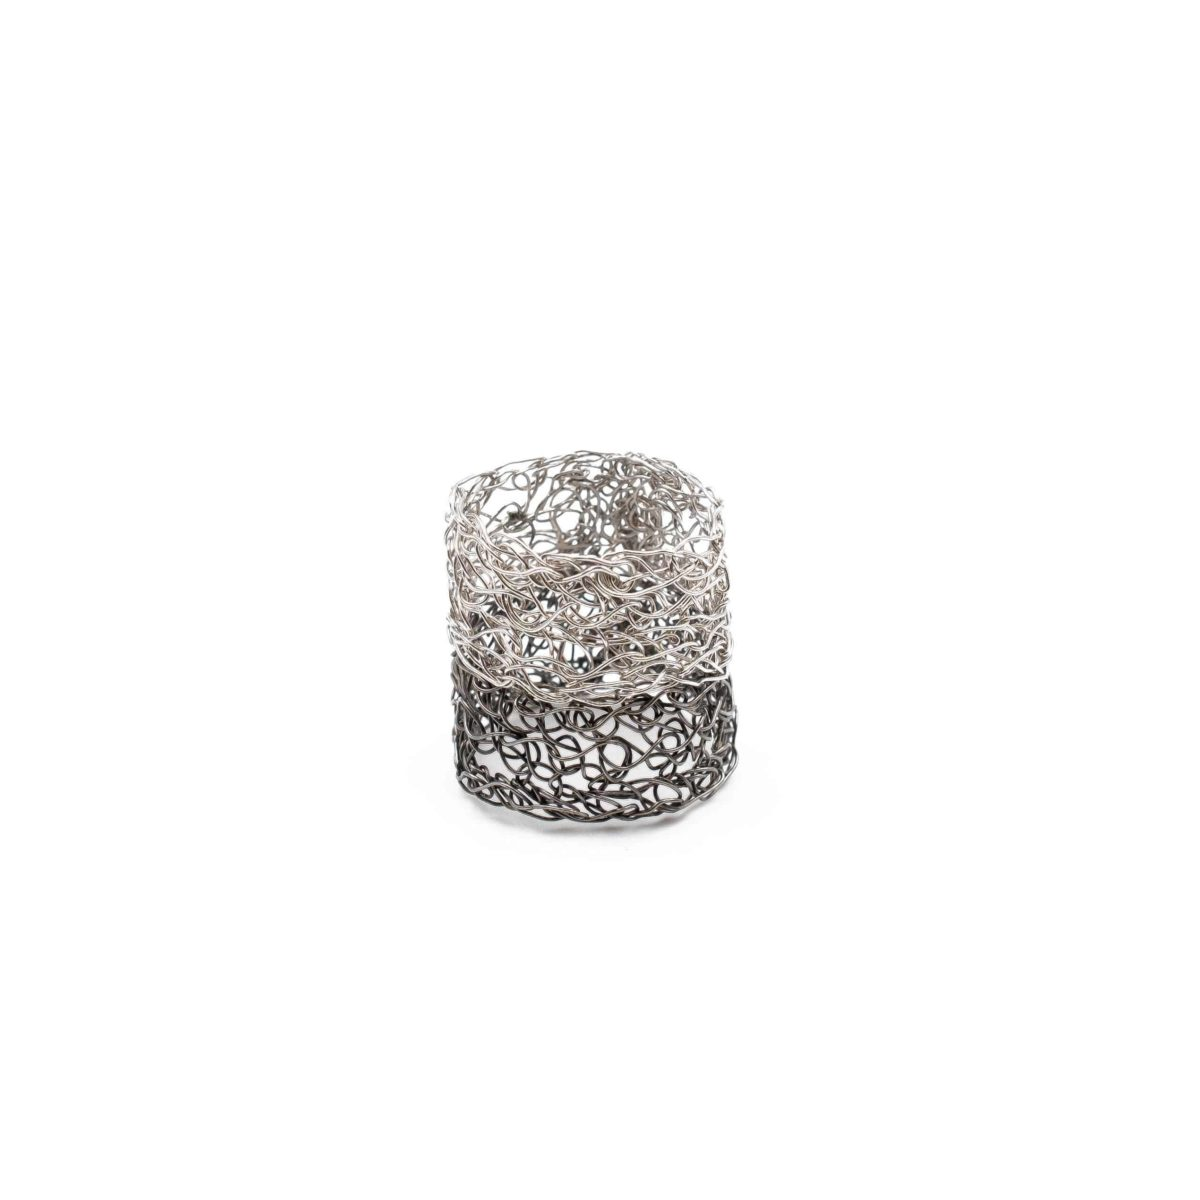 adjustable platinum and black band ring for women